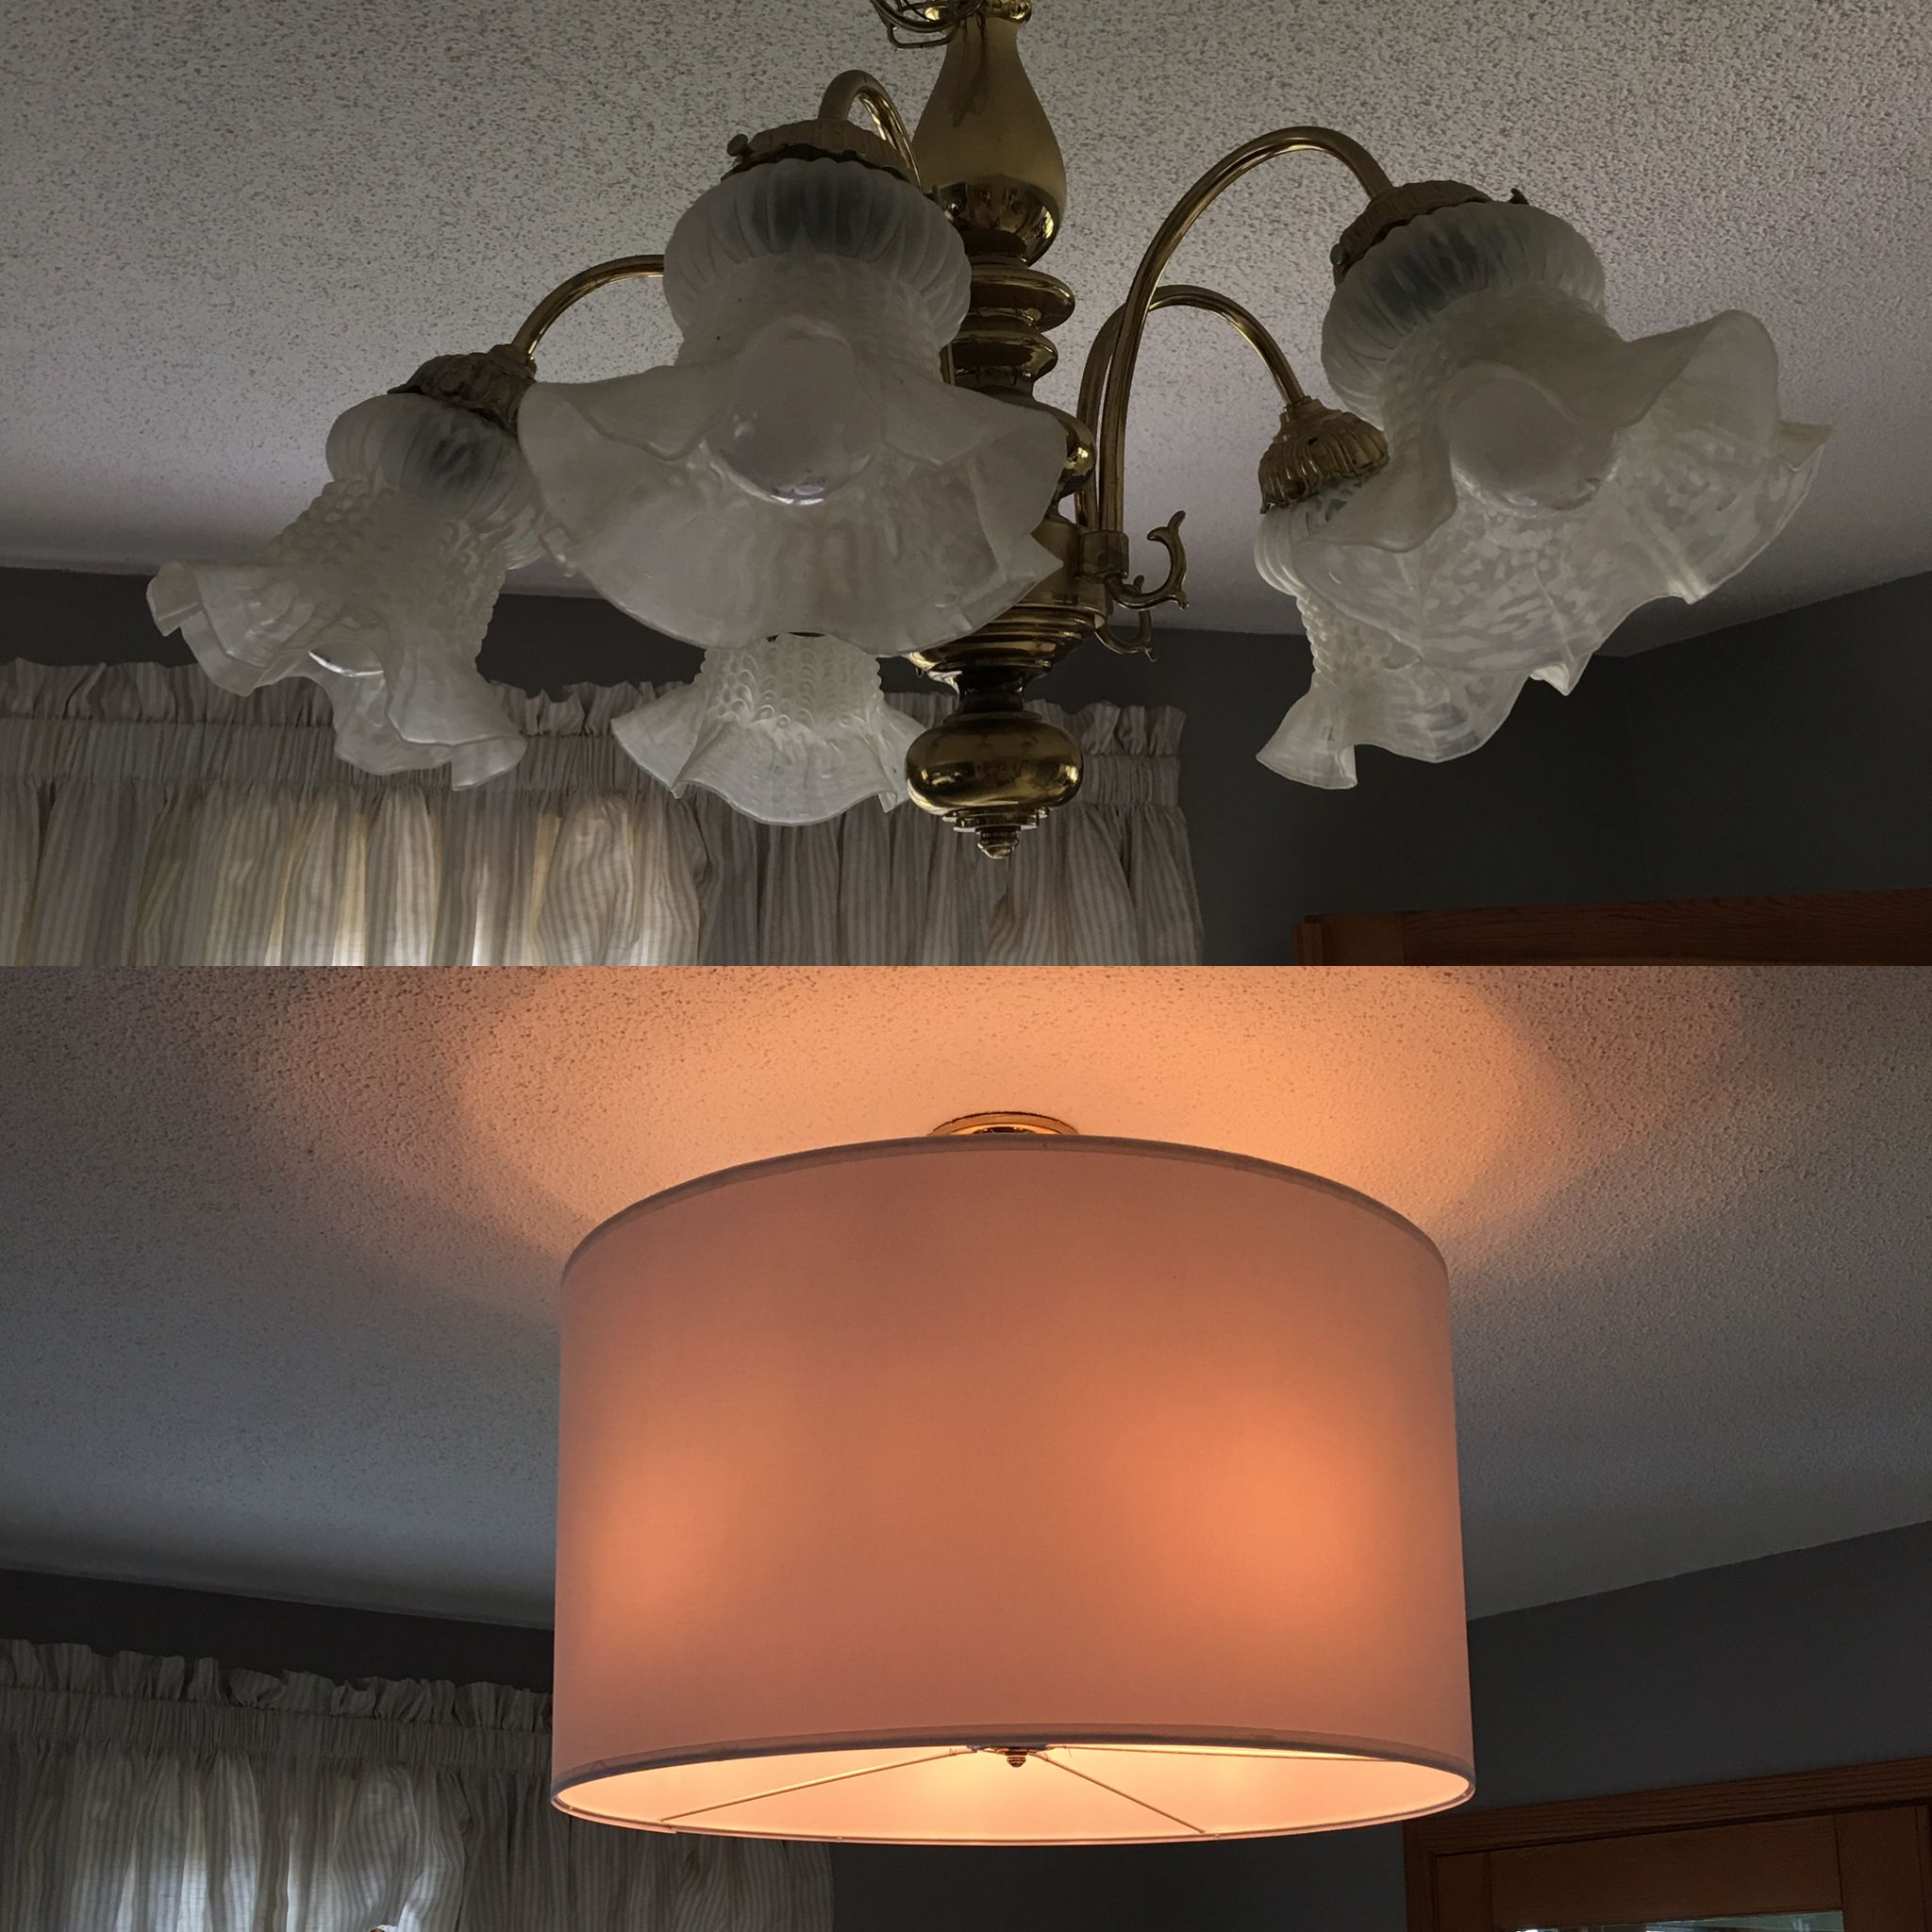 Gold chandelier makeover a simple ikea hack letting you upgrade gold chandelier makeover a simple ikea hack letting you upgrade lighting in a rental arubaitofo Images